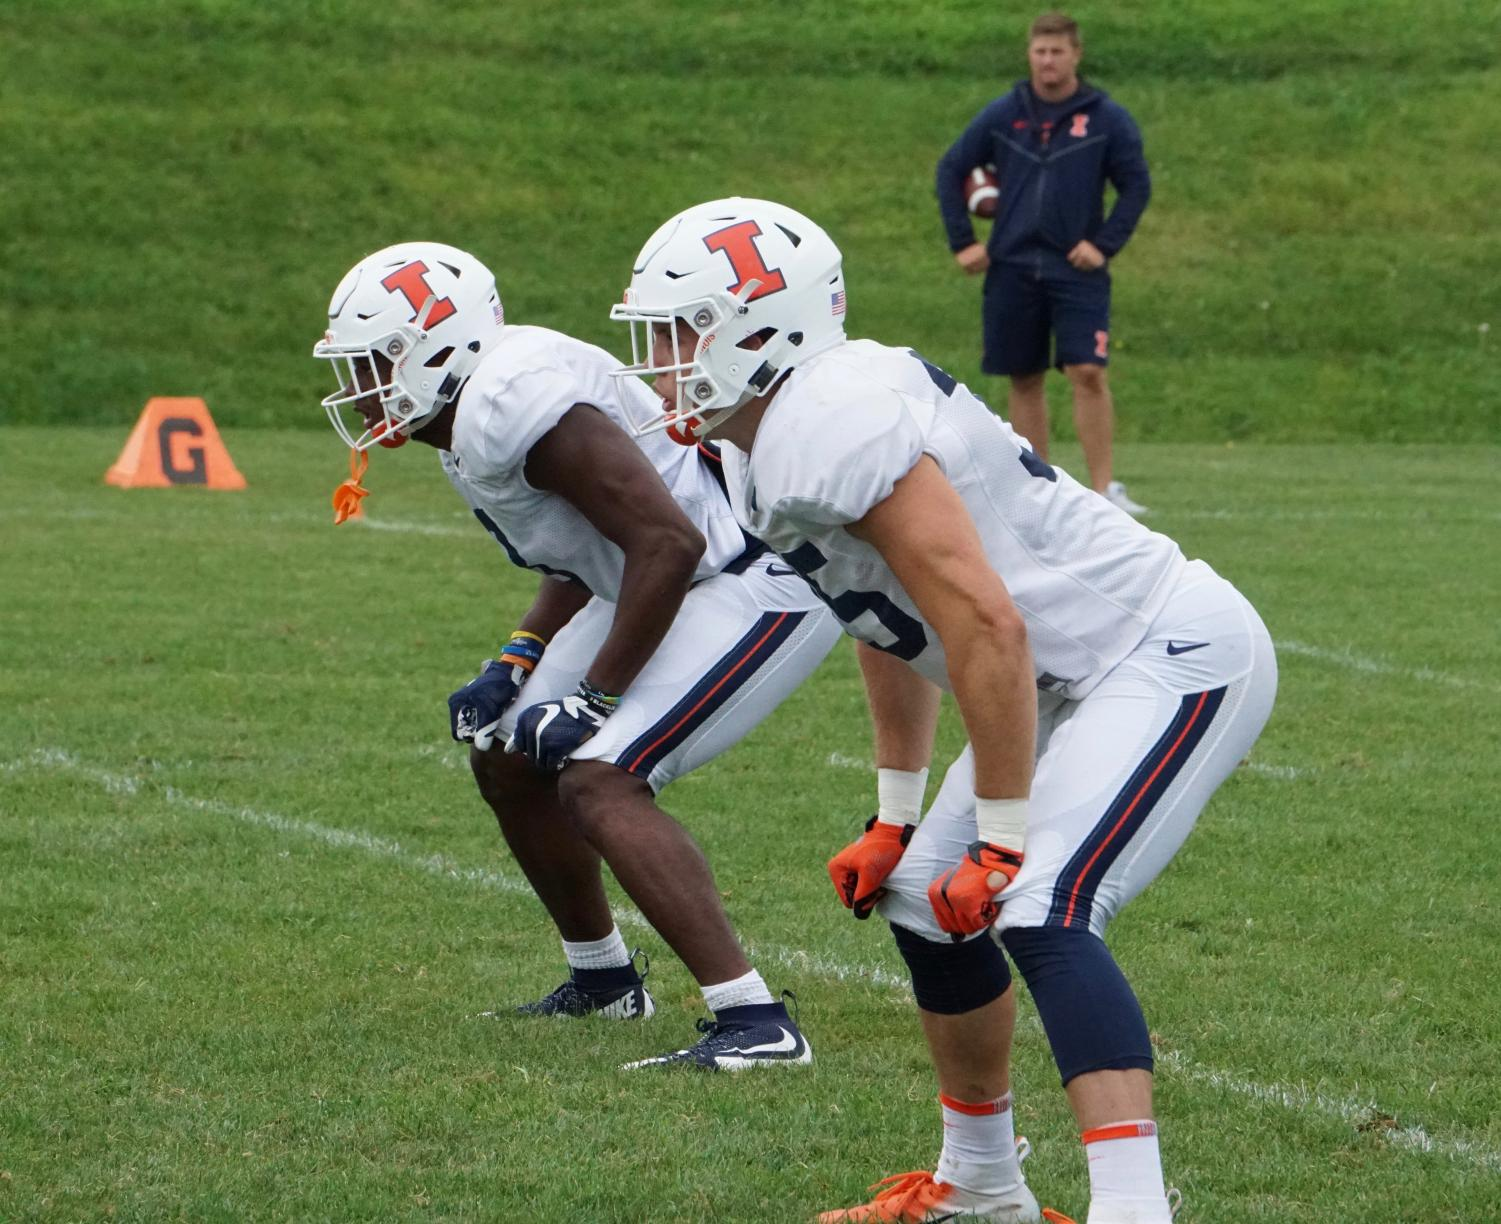 Linebackers Jake Hansen (right) and Del'Shawn Phillips (left) line up on defense at Illinois football training camp on Wednesday. Phillips and Hansen will take on a larger workload this upcoming season as the team is low on players at the position.